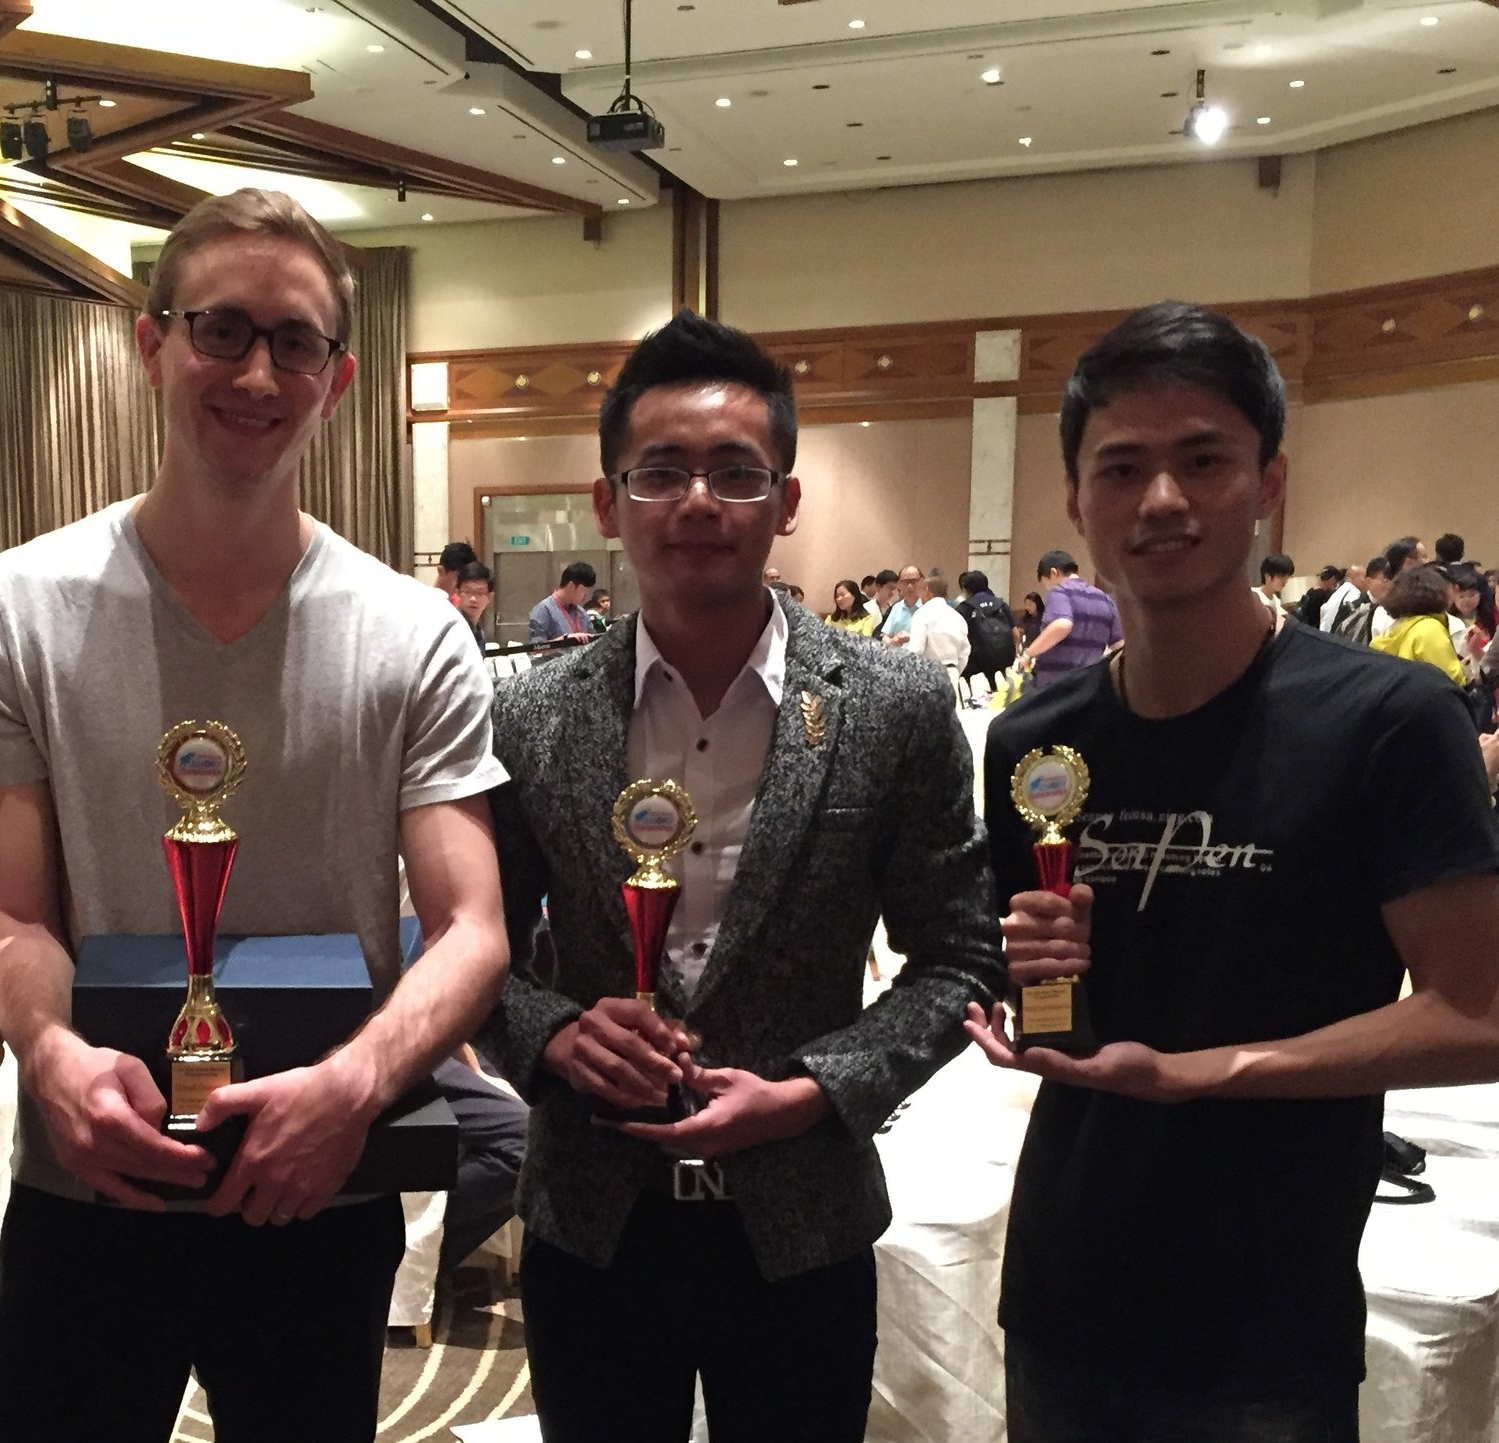 At the 2016 World Memory Championship in Singapore. Left to right: me, Huang Shenghua, and Su Zehe.